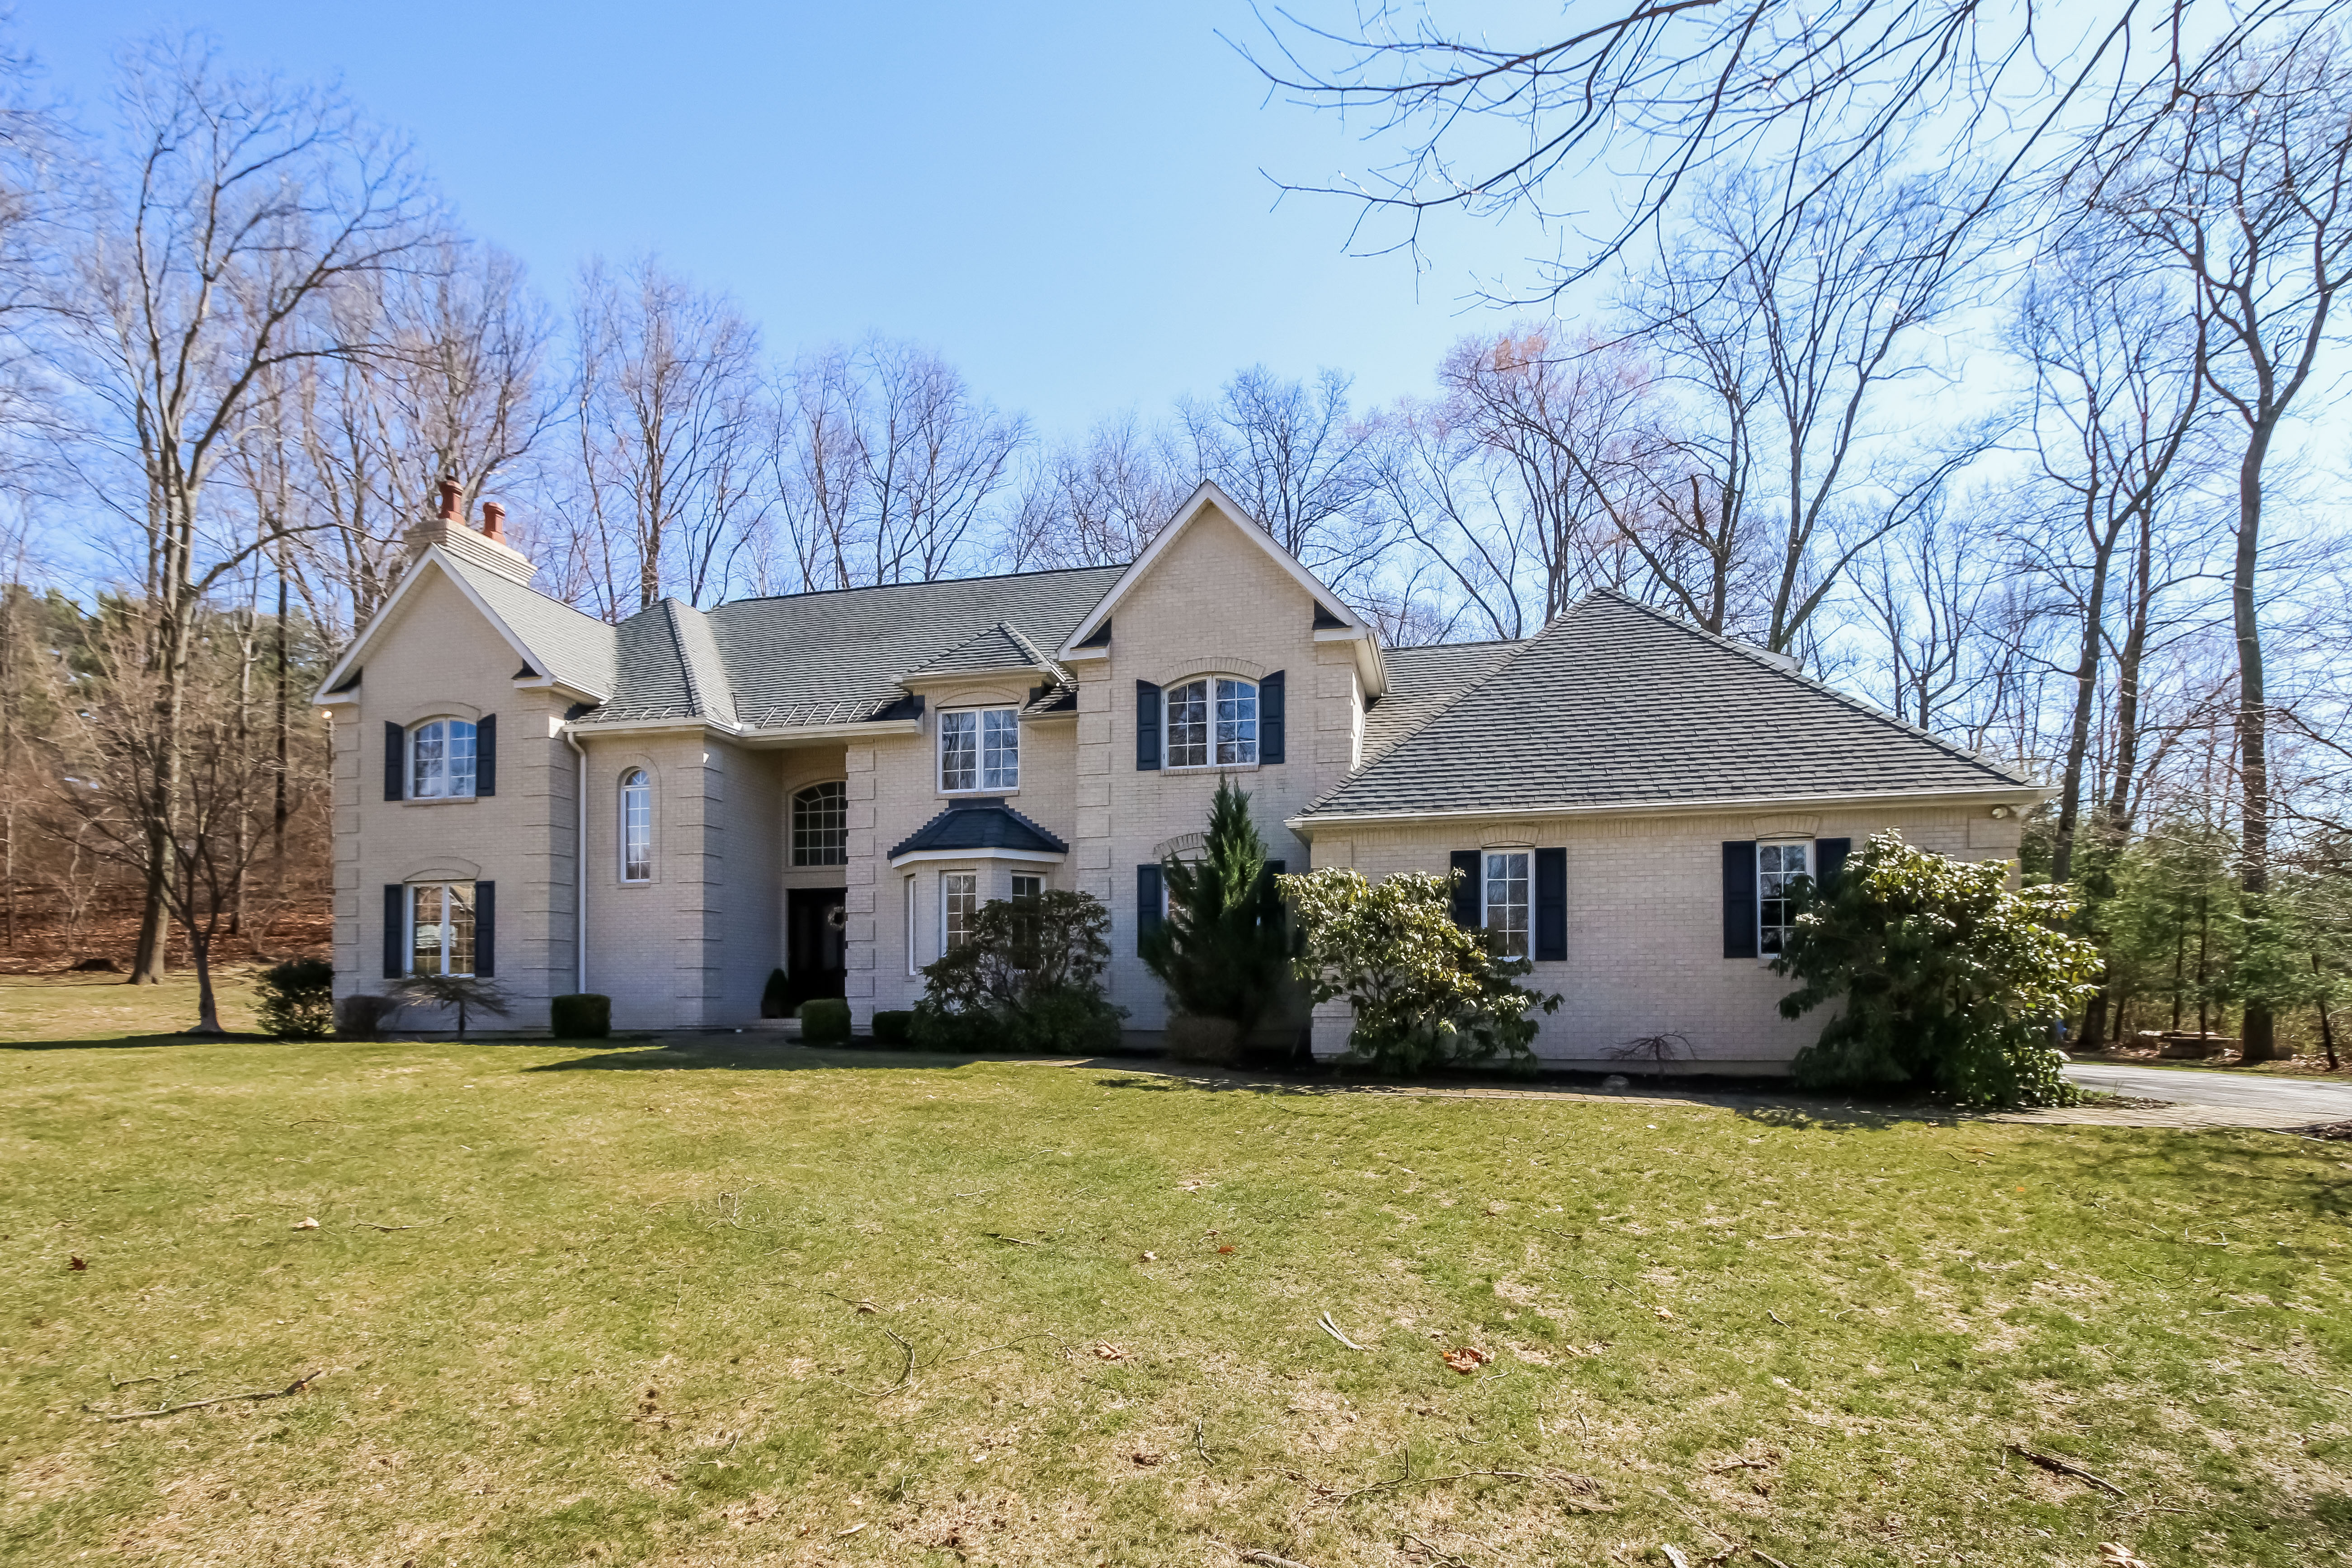 Single Family Home for Rent at Prepare To Be Impressed 35 Gleneagle Road Middlebury, Connecticut 06762 United States